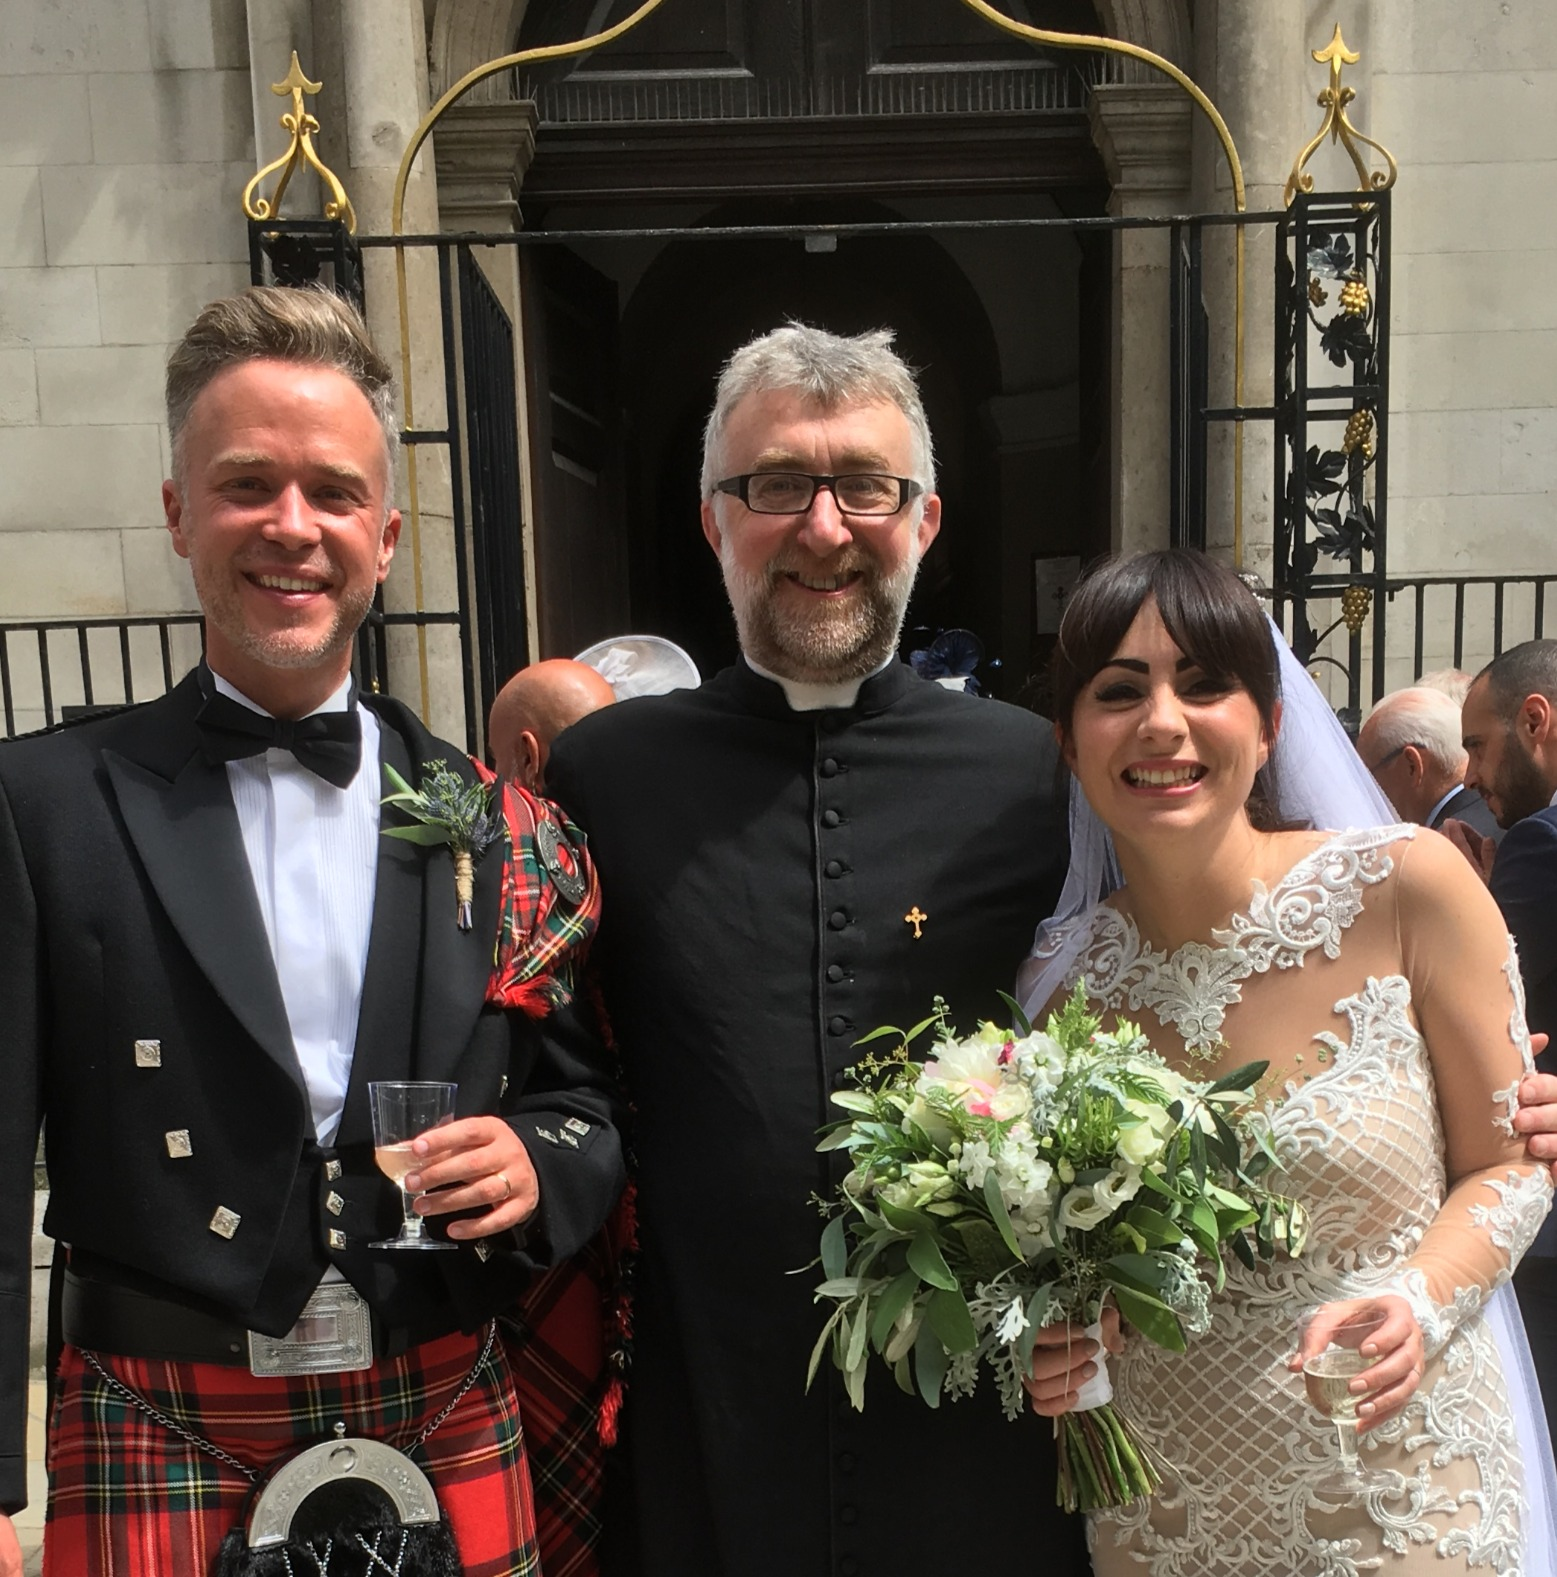 Fr Tim smiling with a couple just married outside St James Garlickhythe